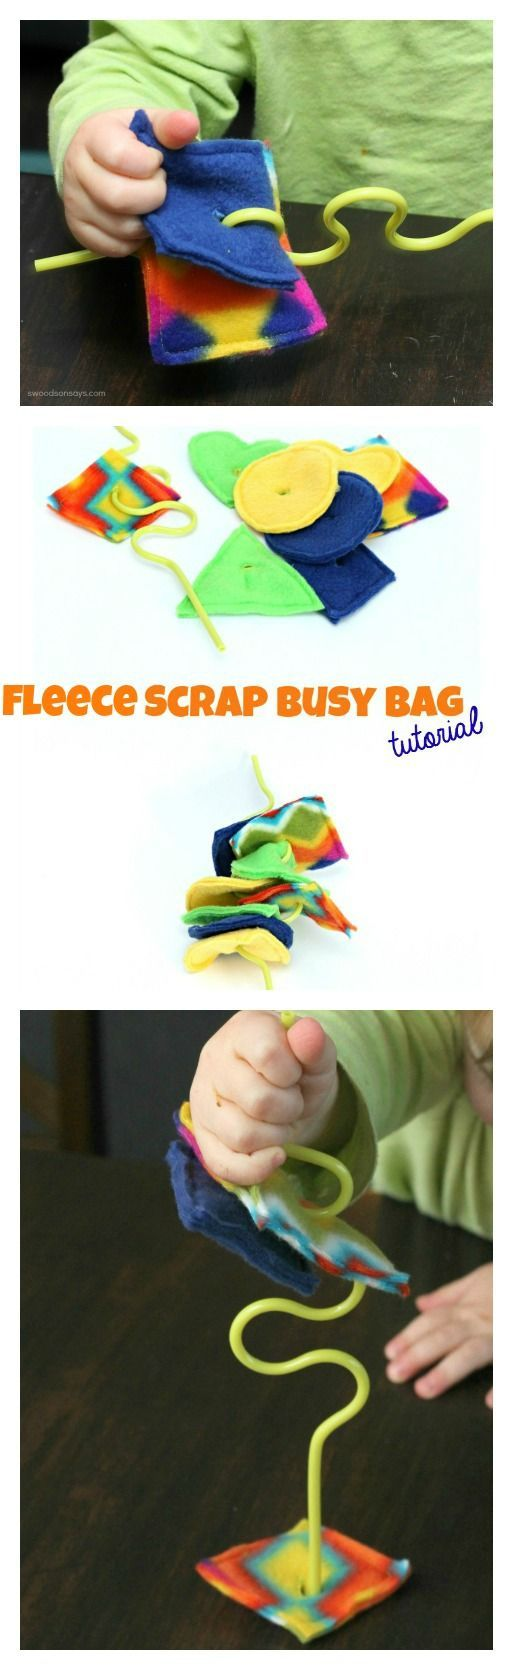 Fleece Scrap Busy Bag Tutorial - a quick, easy way to use up fleece scraps and keep your little one entertained. Links to other busy bag tutorials throughout the week!